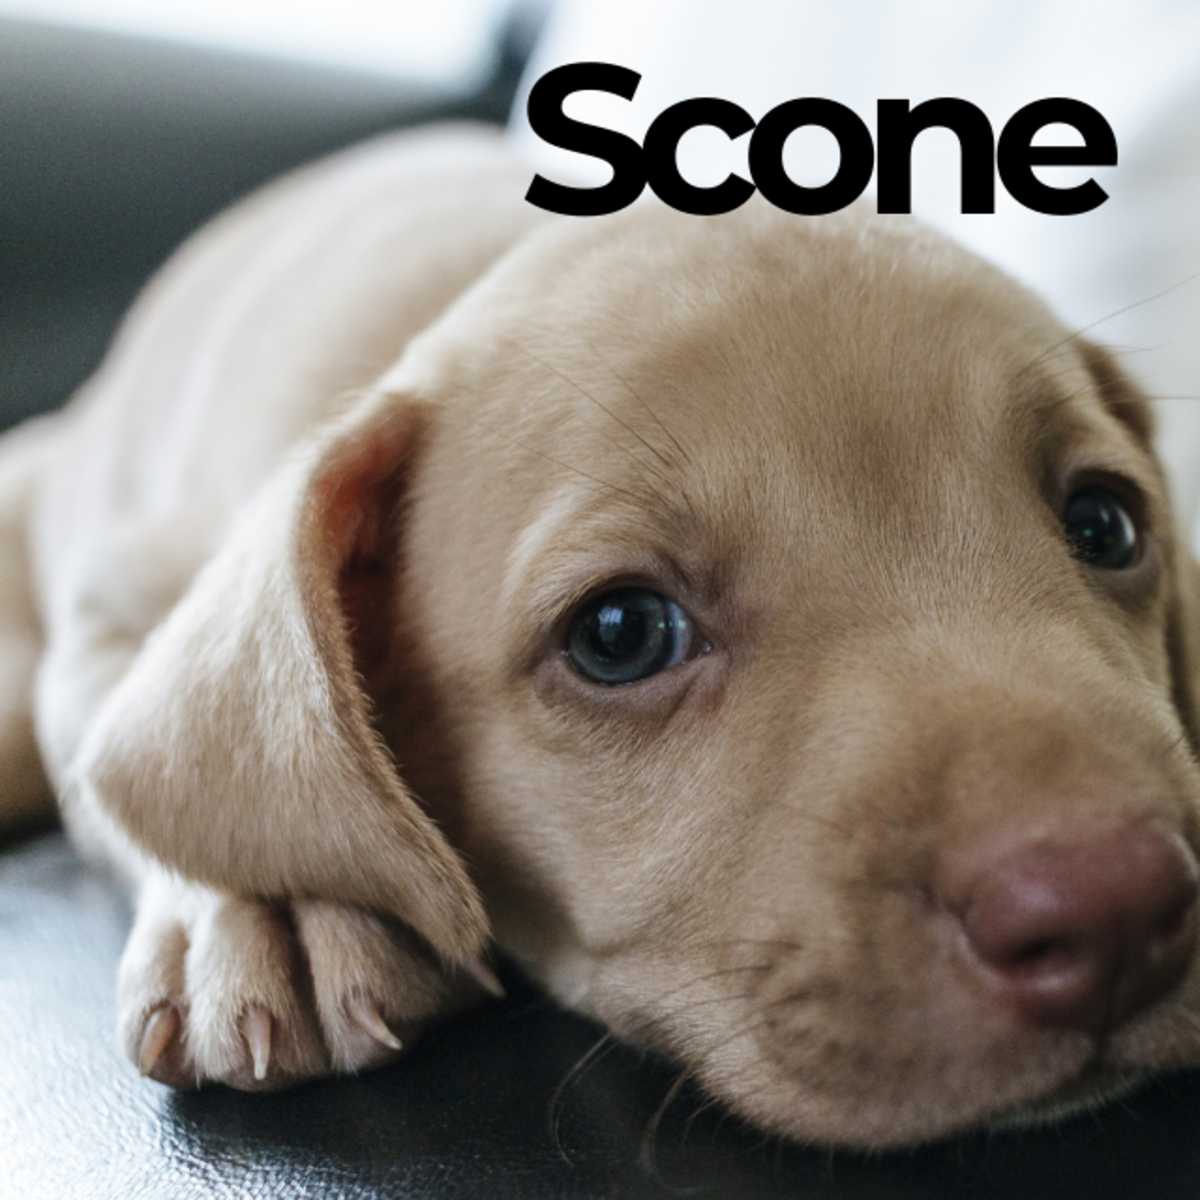 Puppy named Scone